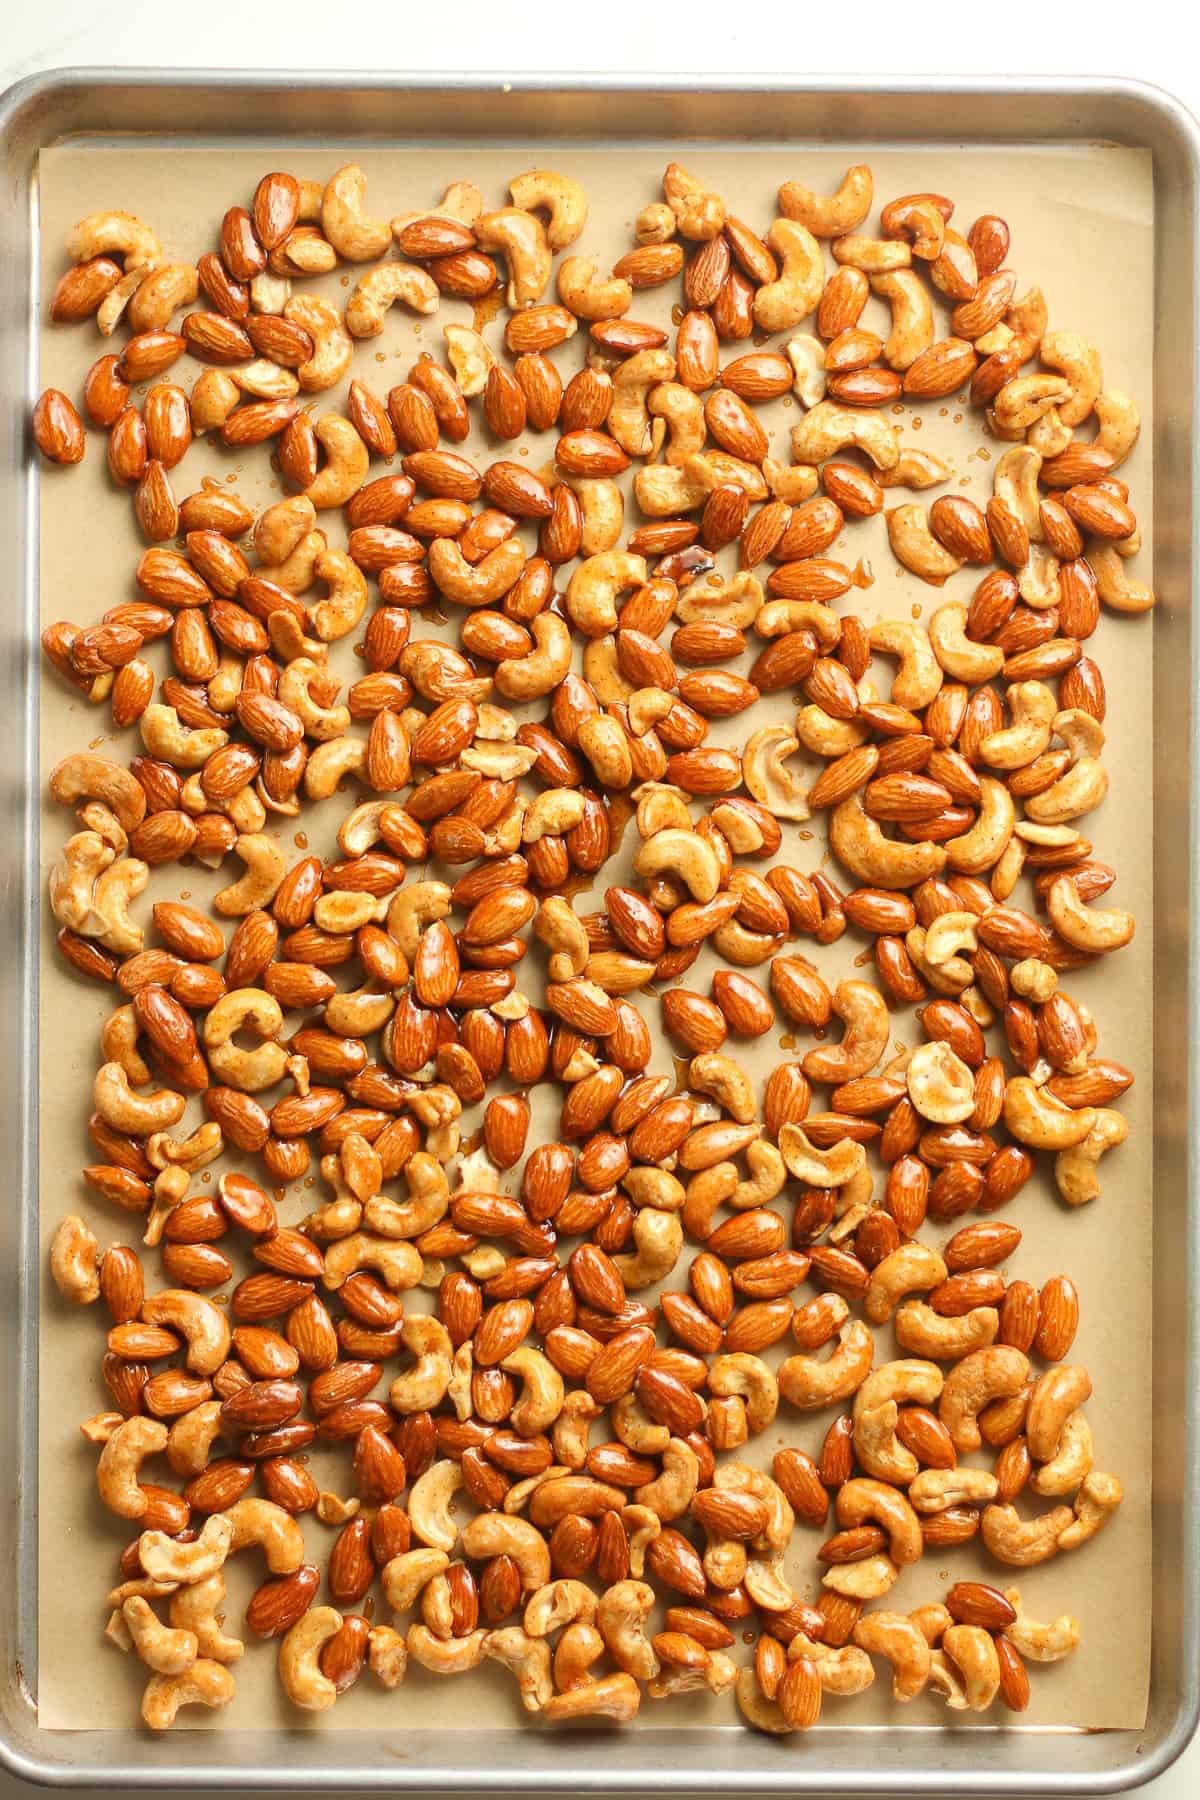 A sheet pan of the nuts ready to go in the oven.